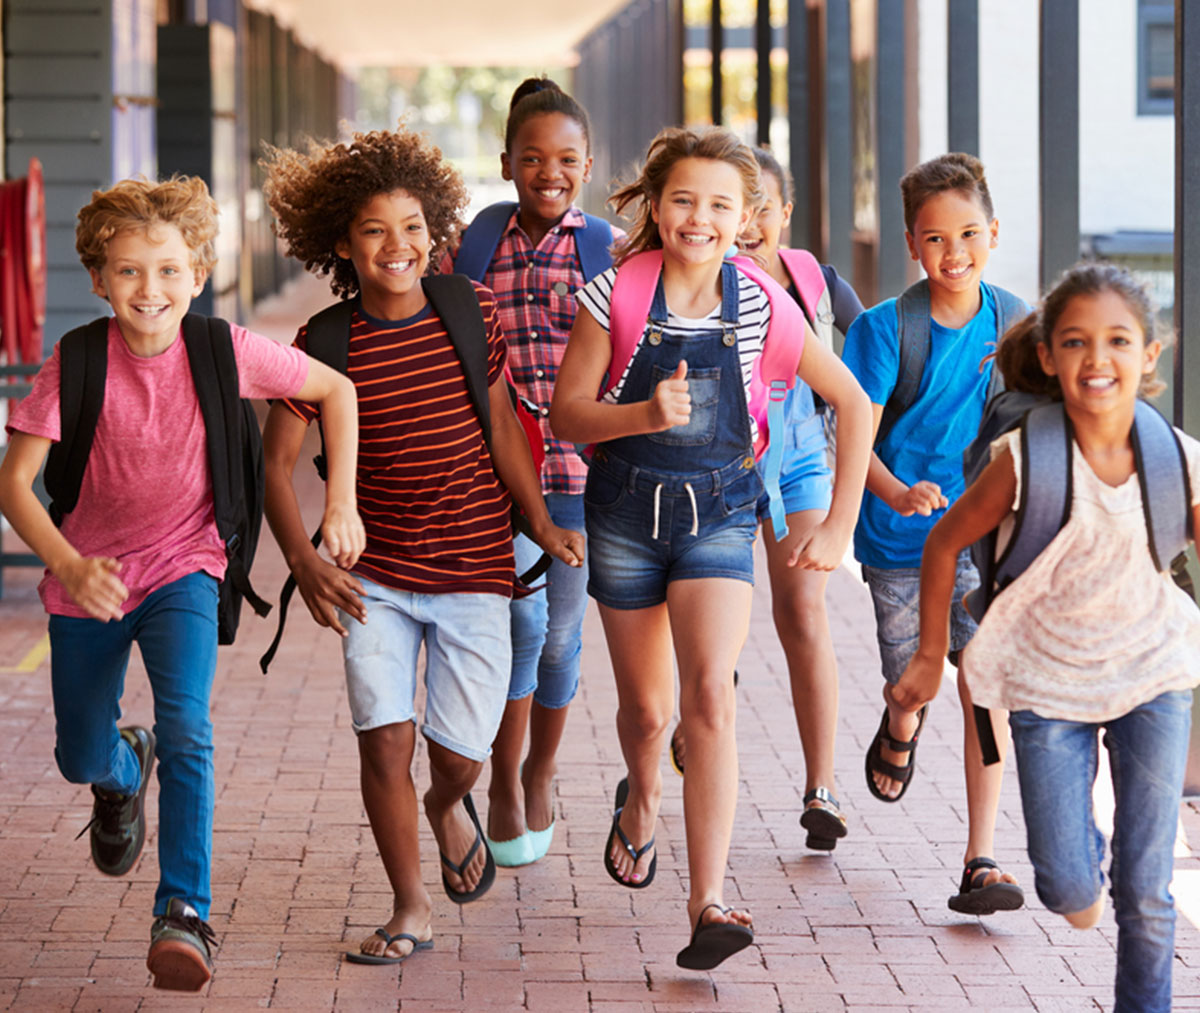 group of young school kids running with backpacks on